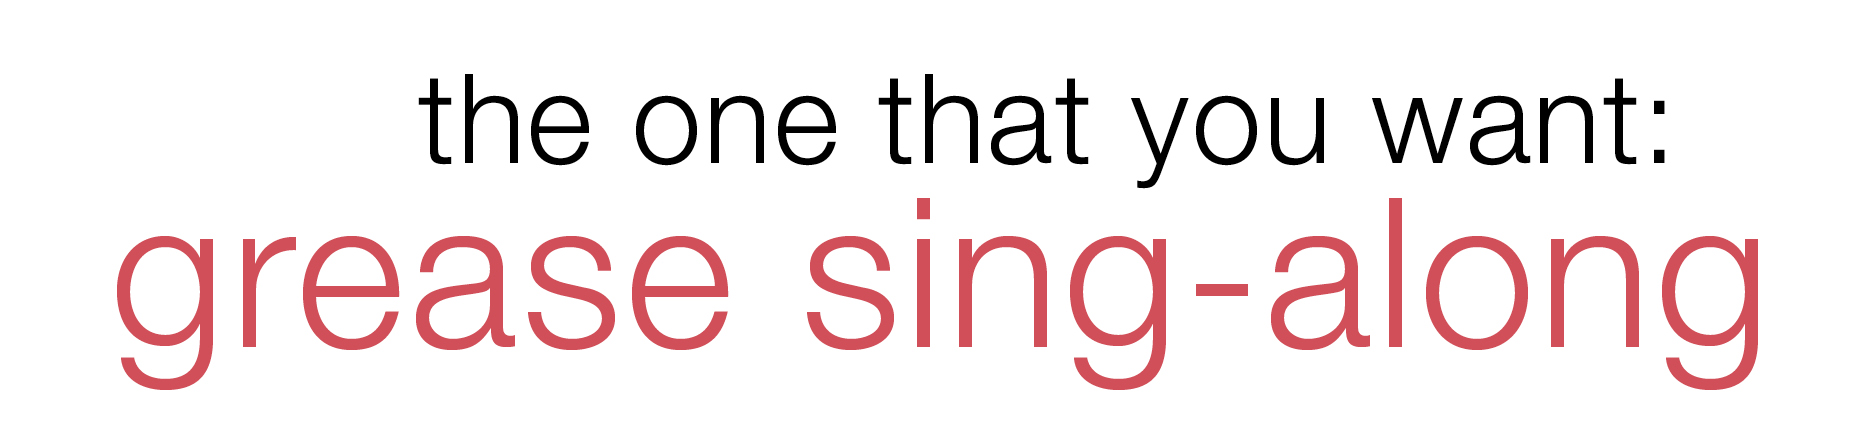 The One That You Want: Grease Sing-Along